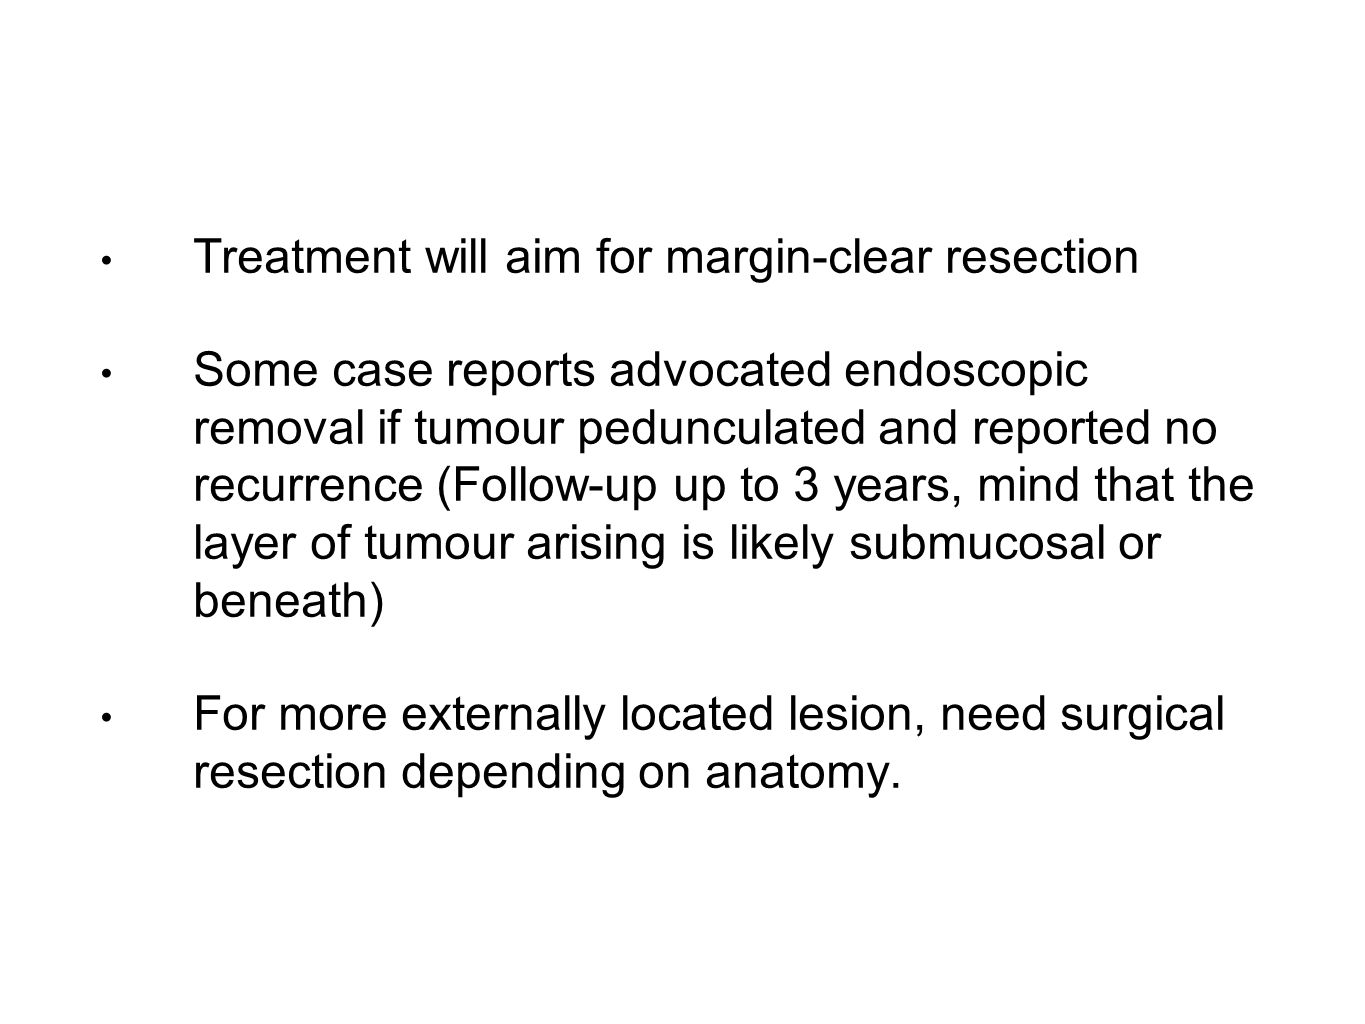 Treatment will aim for margin-clear resection Some case reports advocated endoscopic removal if tumour pedunculated and reported no recurrence (Follow-up up to 3 years, mind that the layer of tumour arising is likely submucosal or beneath) For more externally located lesion, need surgical resection depending on anatomy.